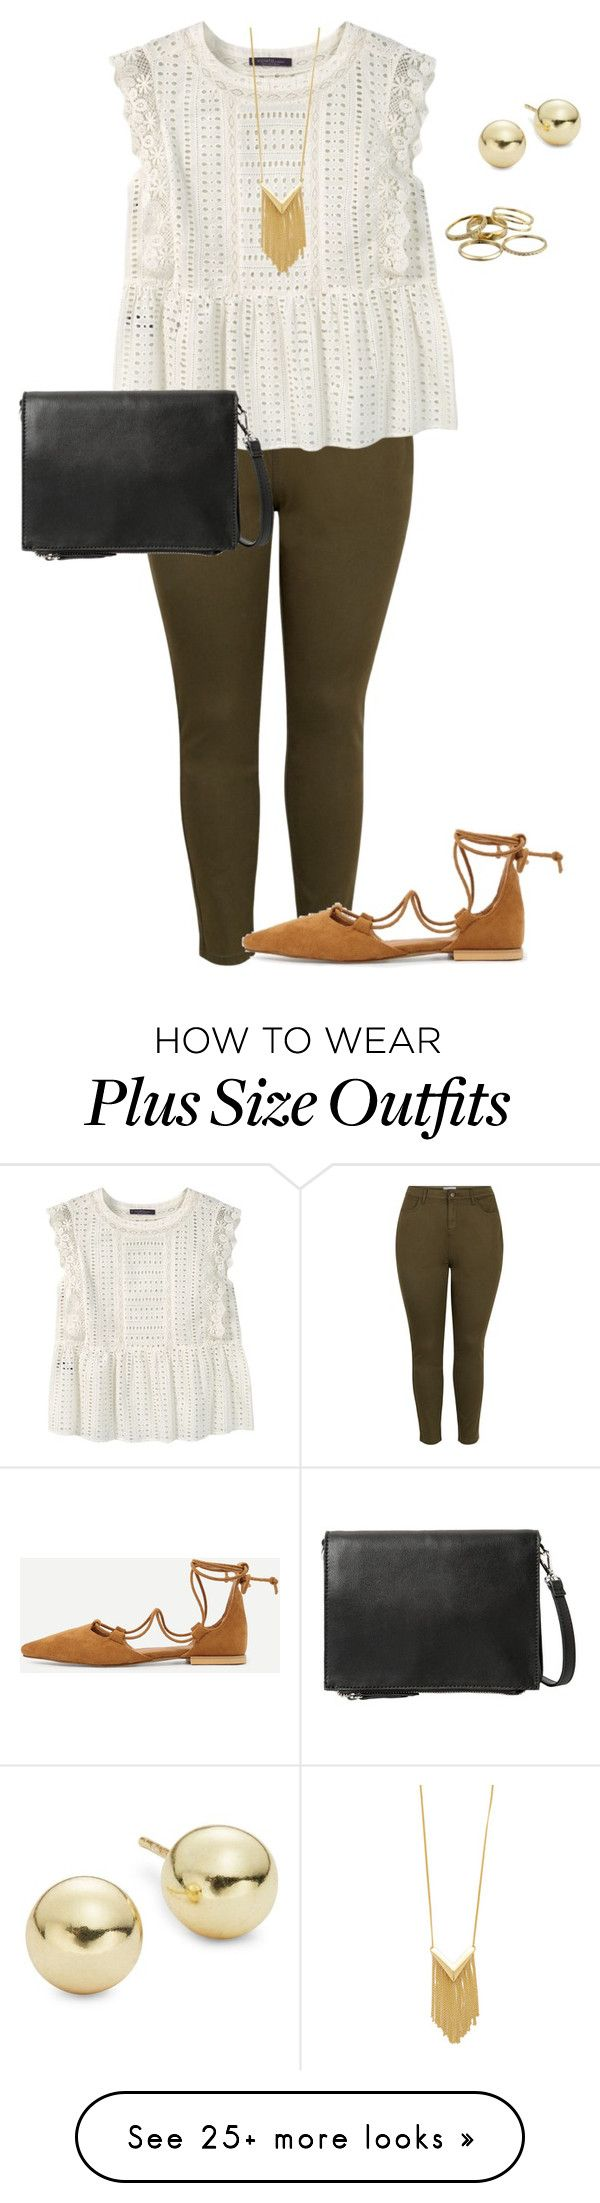 """plus size simple summer work lk"" by kristie-payne on Polyvore featuring New Look, Violeta by Mango, Lord & Taylor, Kendra Scott and Sam Edelman"